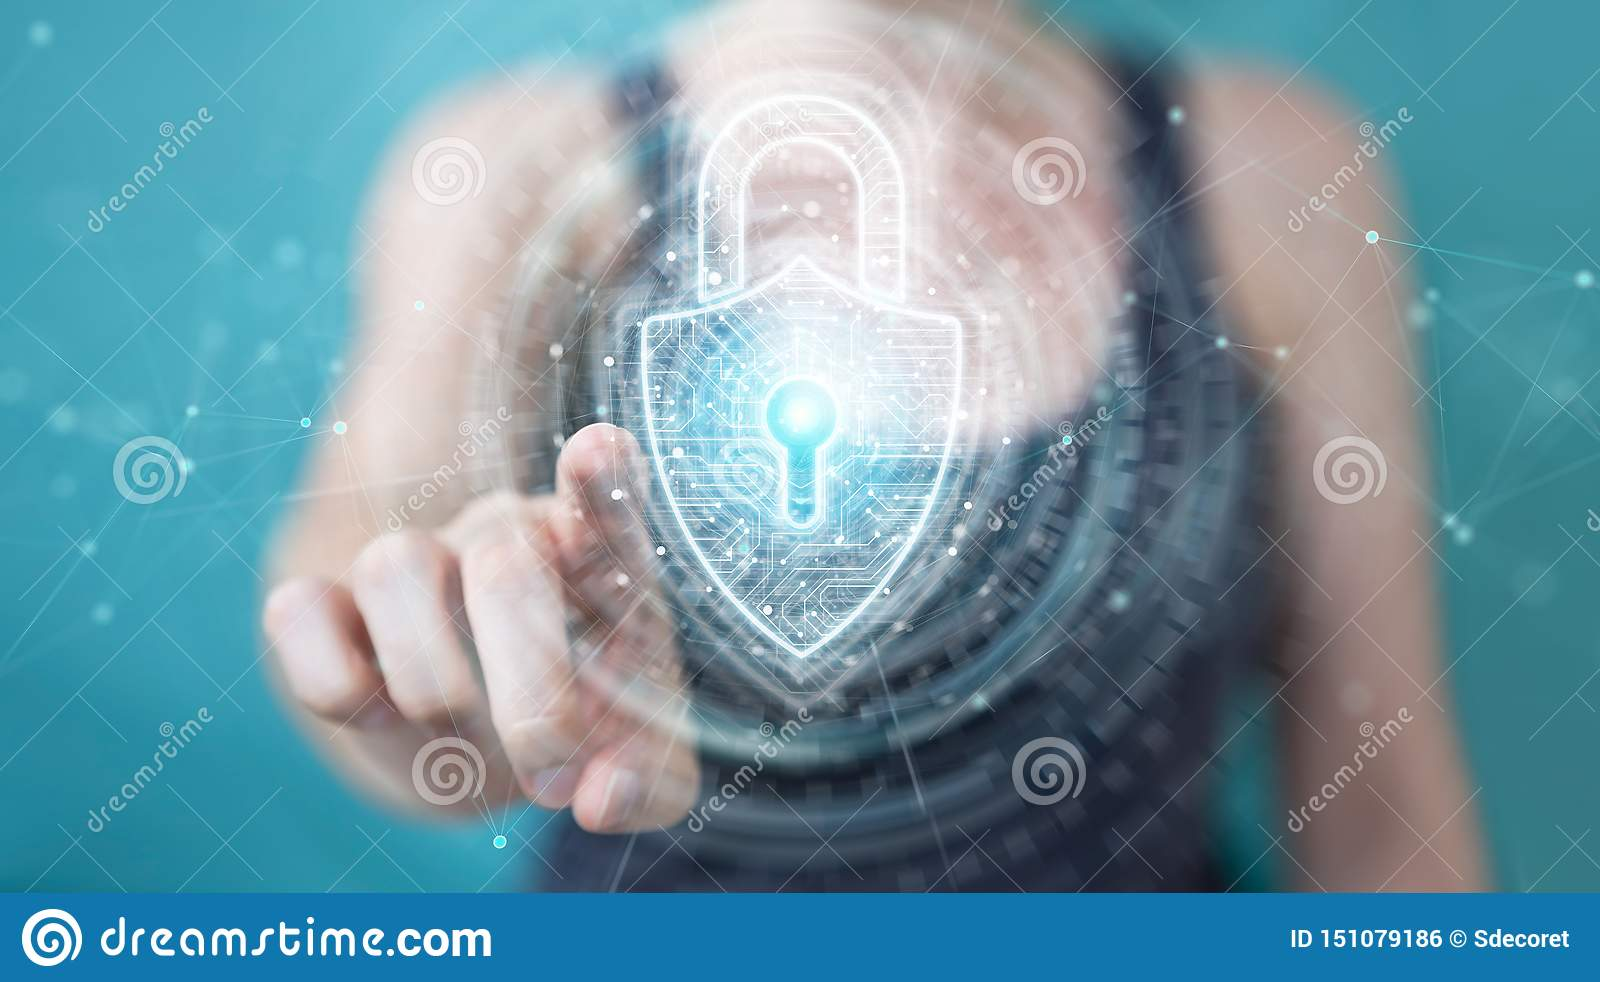 Womanusing digital padlock security interface to protect datas 3D rendering